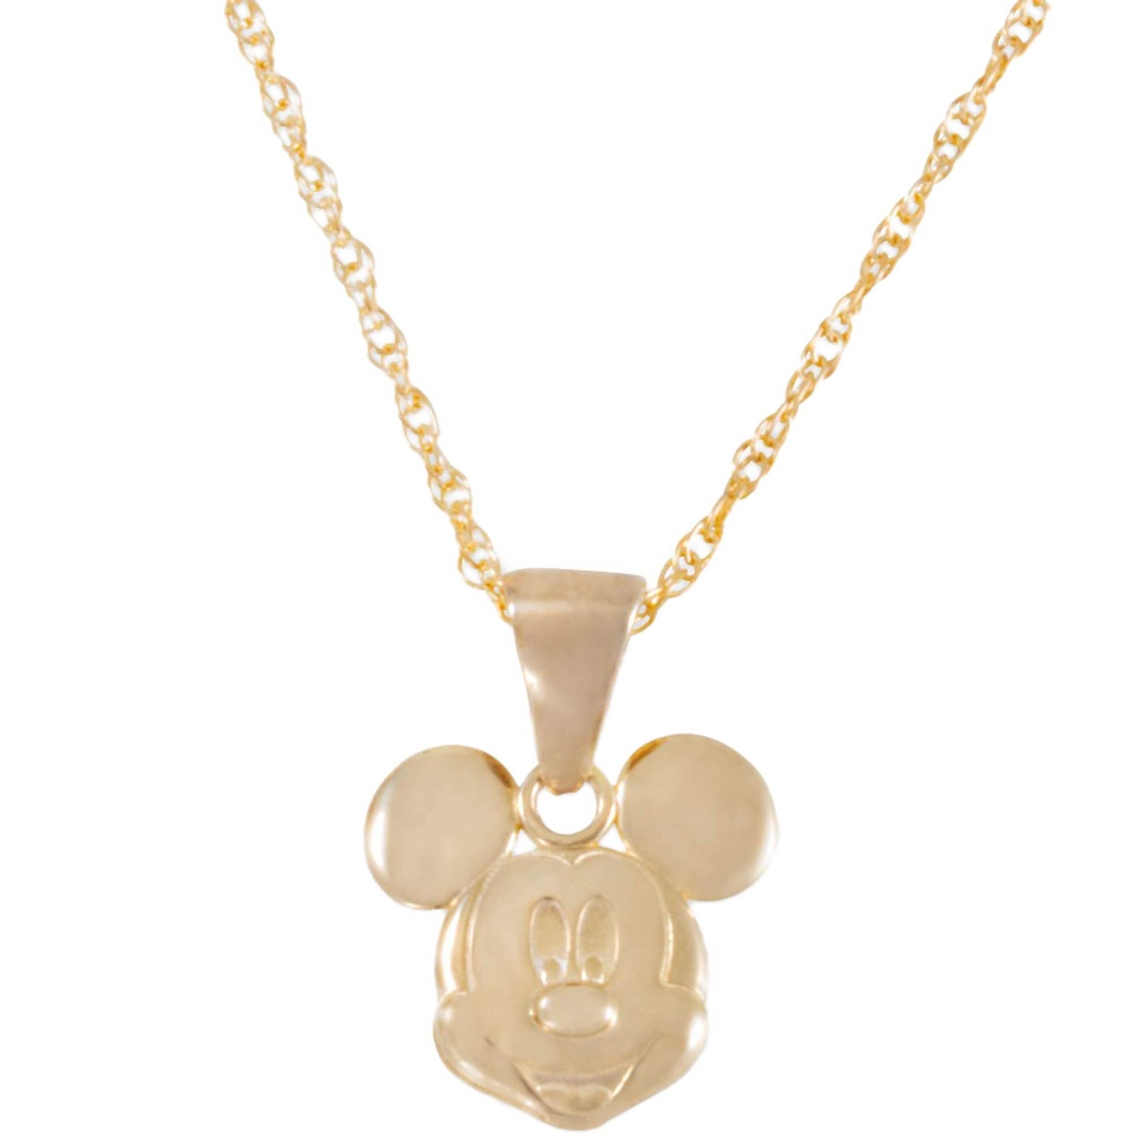 abde8185d63 Disney 14k Gold Mickey Mouse Pendant, 15 In. | Children's Necklaces ...